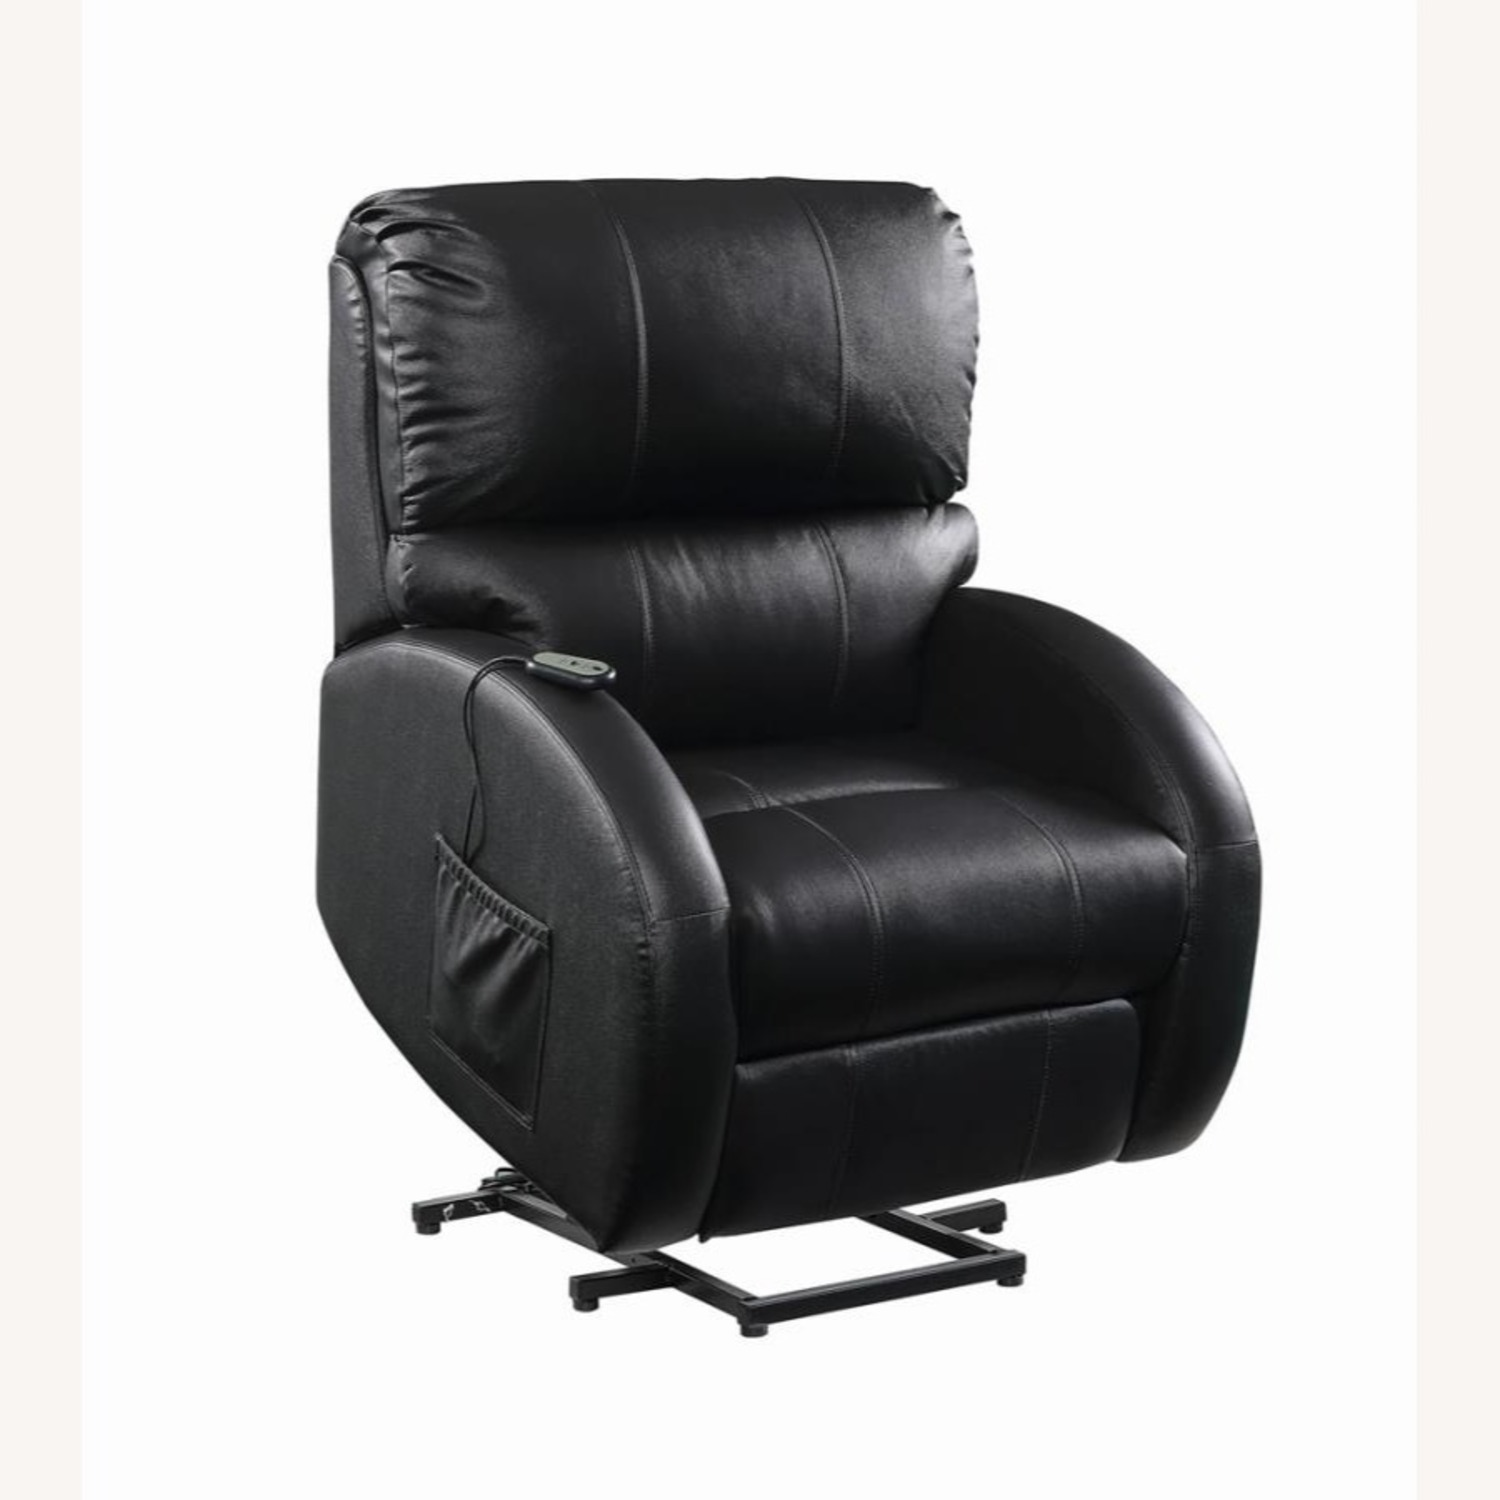 Power Lift Recliner In Black Top Grain Leather - image-2